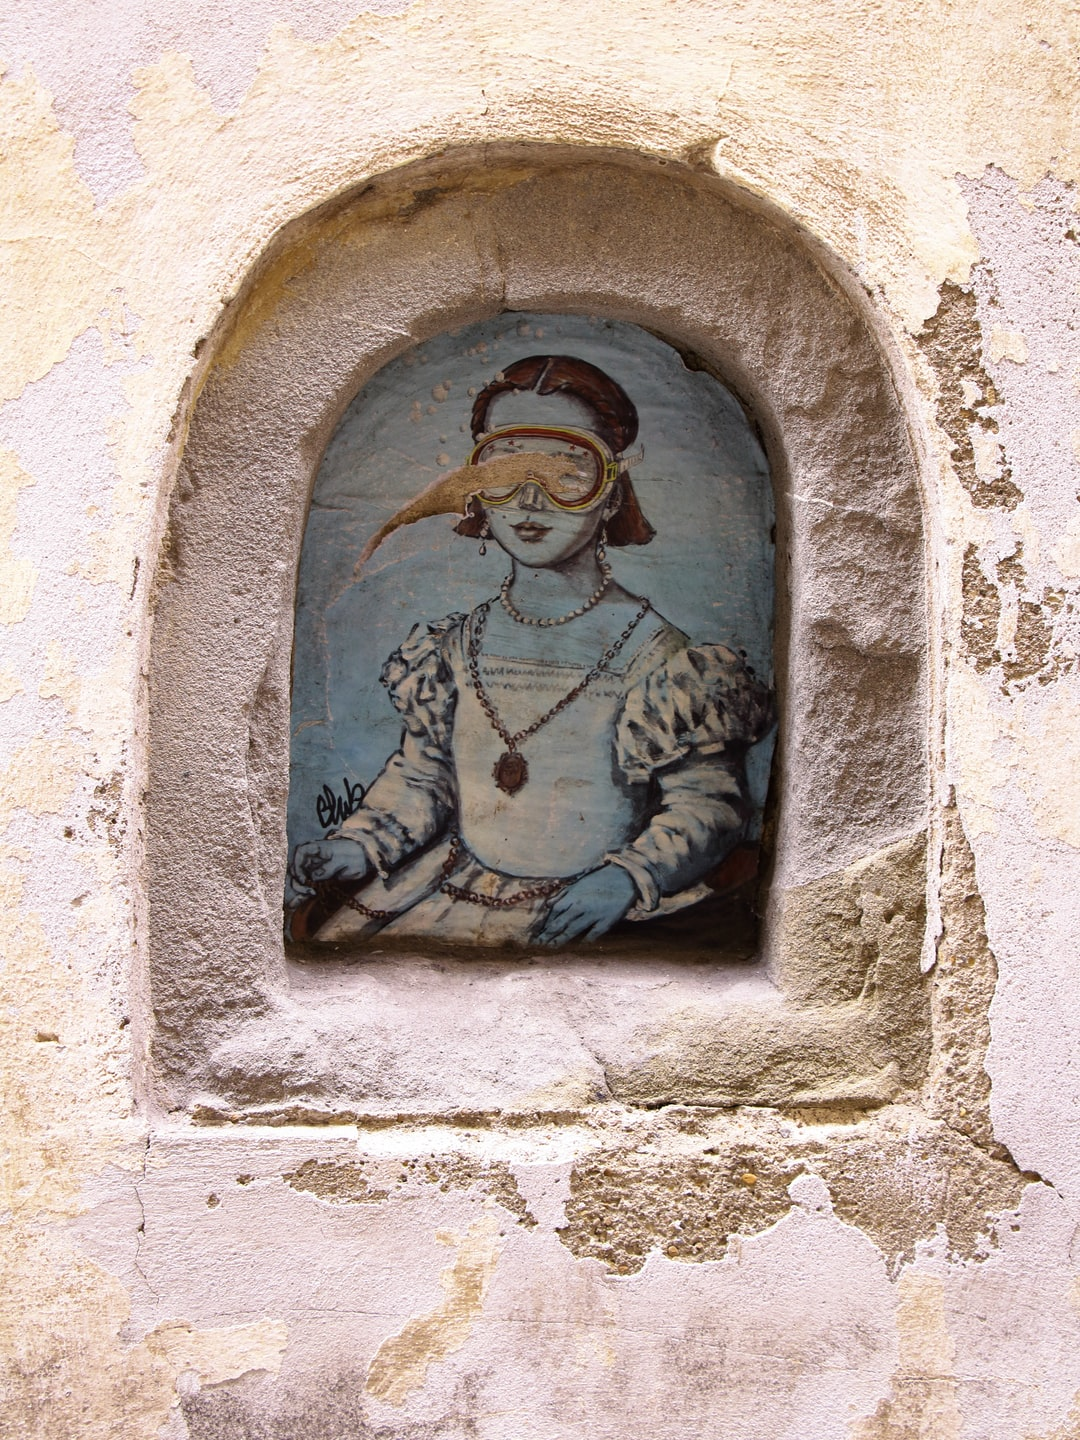 Walking around the streets of Florence, here it comes a suprisingly ironic street art portrait. Usaually these niches host painted or printed representations of the Virgin Mary. Or sometimes, they are just the place for a bottle of wine. But this time, an underwater girl wearing scuba mask is striking a pose!